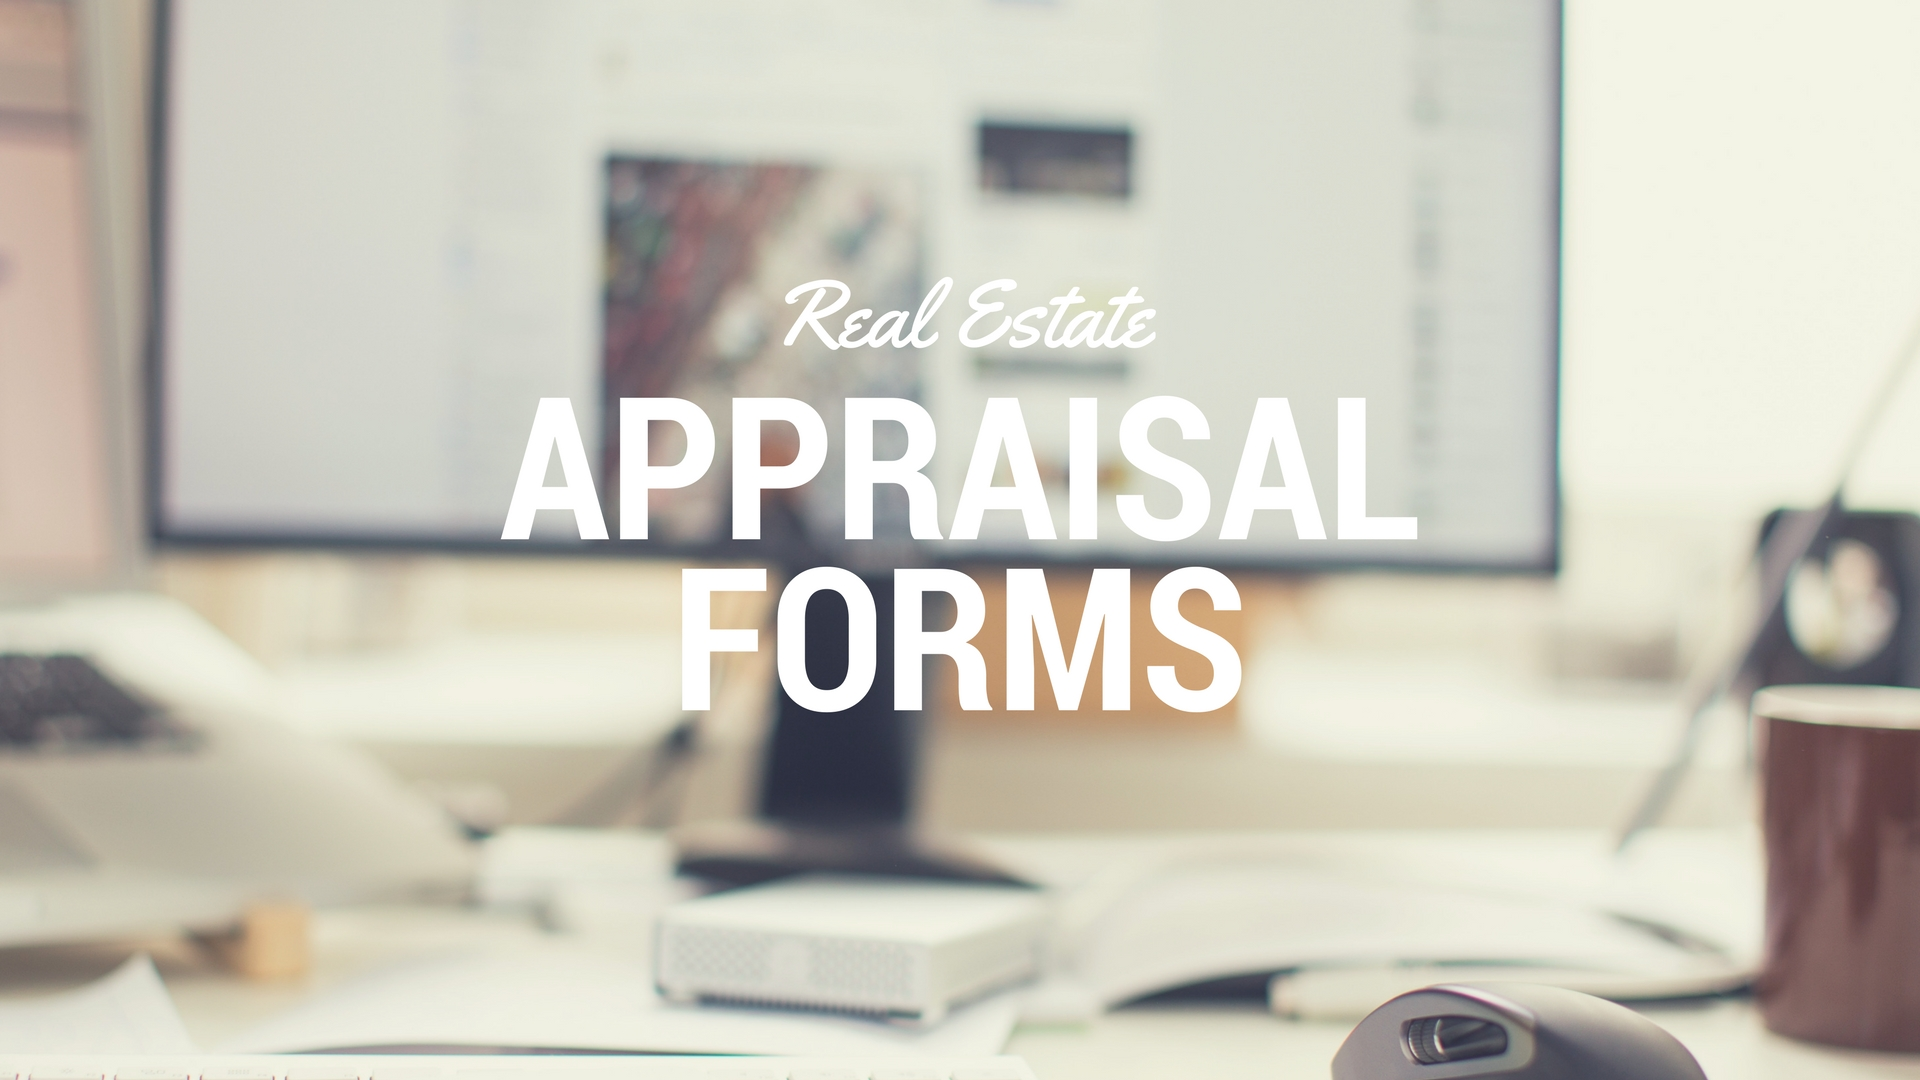 Real estate appraisal forms realvals for House appraisal